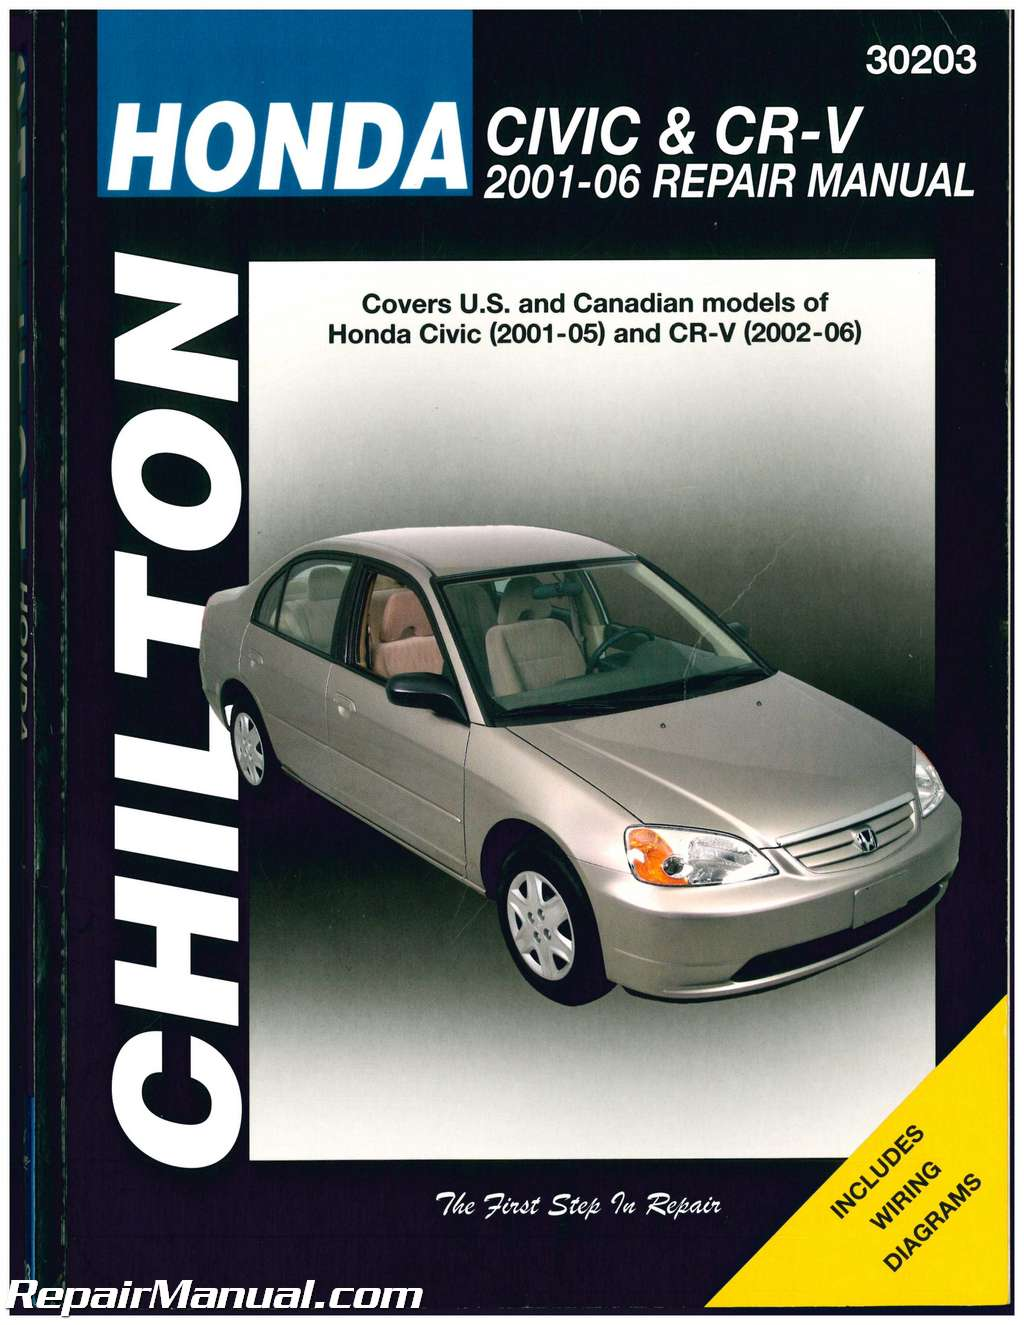 chilton honda civic and cr v repair manual rh repairmanual com 2005 Honda Civic Hybrid Interior 2005 Honda Civic Hybrid Interior